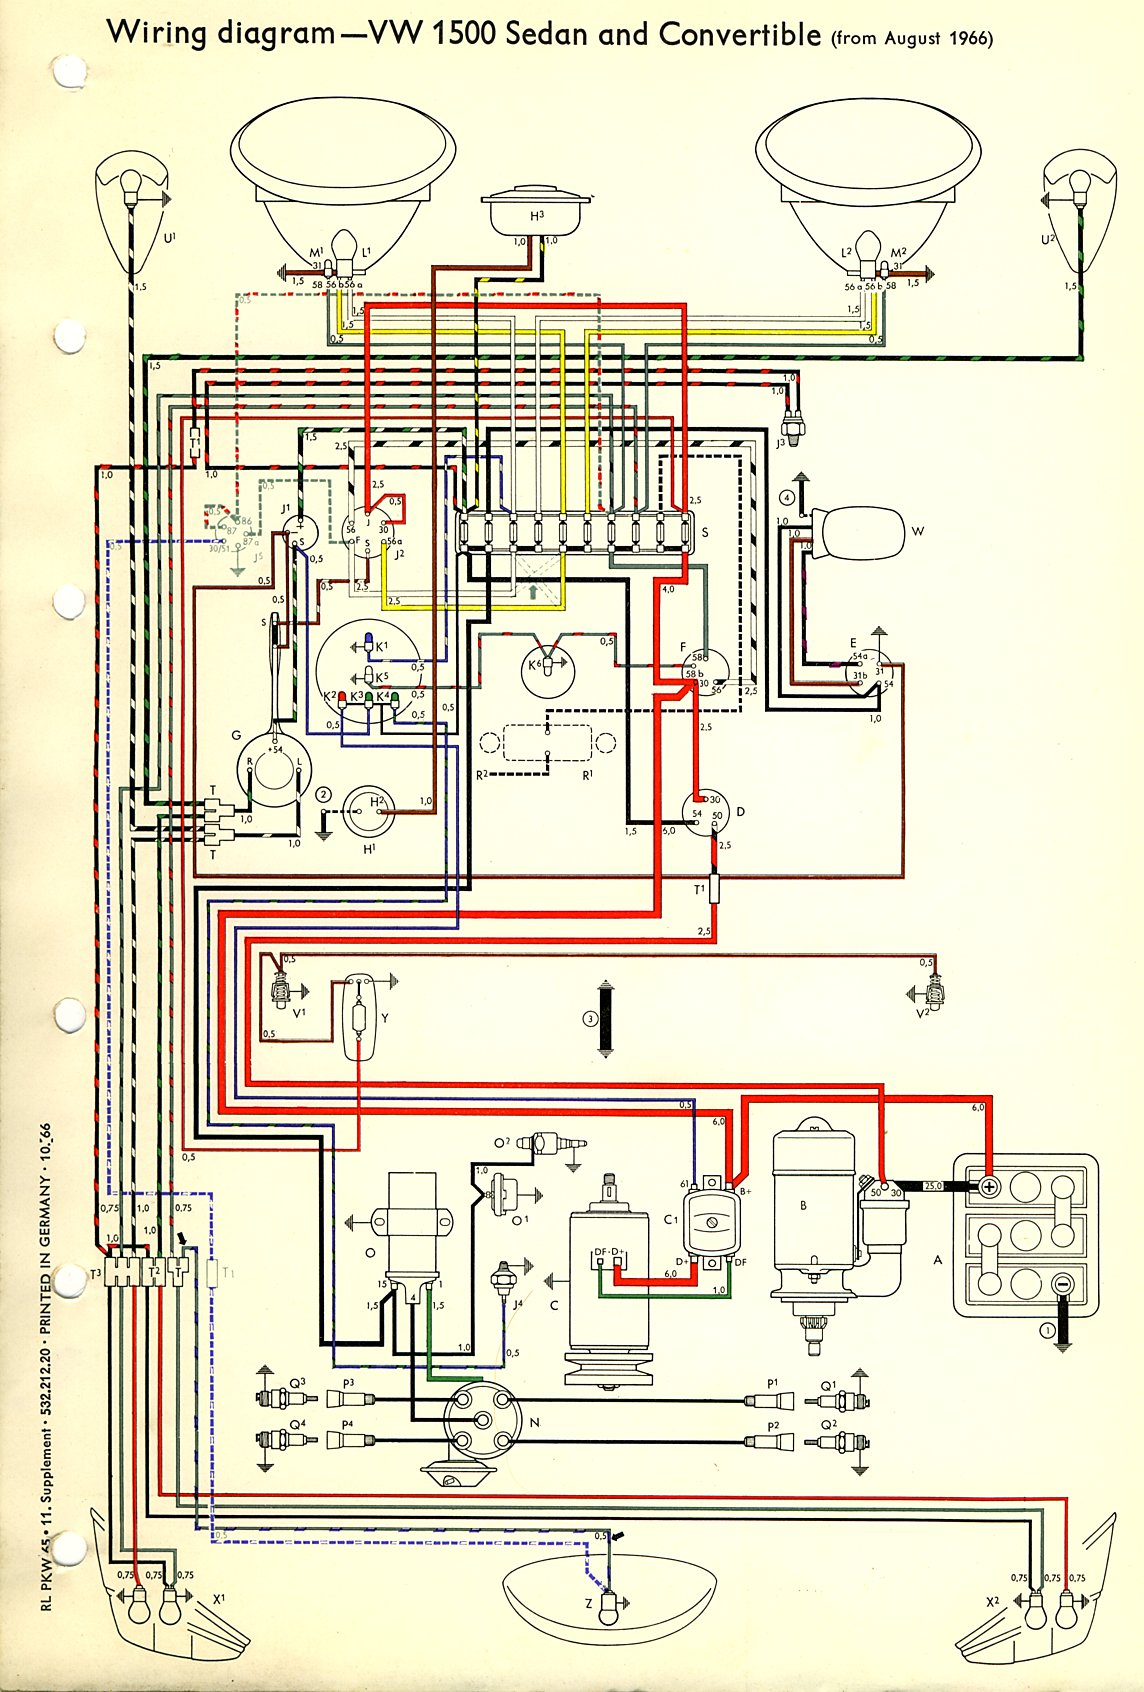 bug_67 67 vw bus wiring harness 71 vw wiring harness \u2022 wiring diagrams Wiring Harness Diagram at sewacar.co